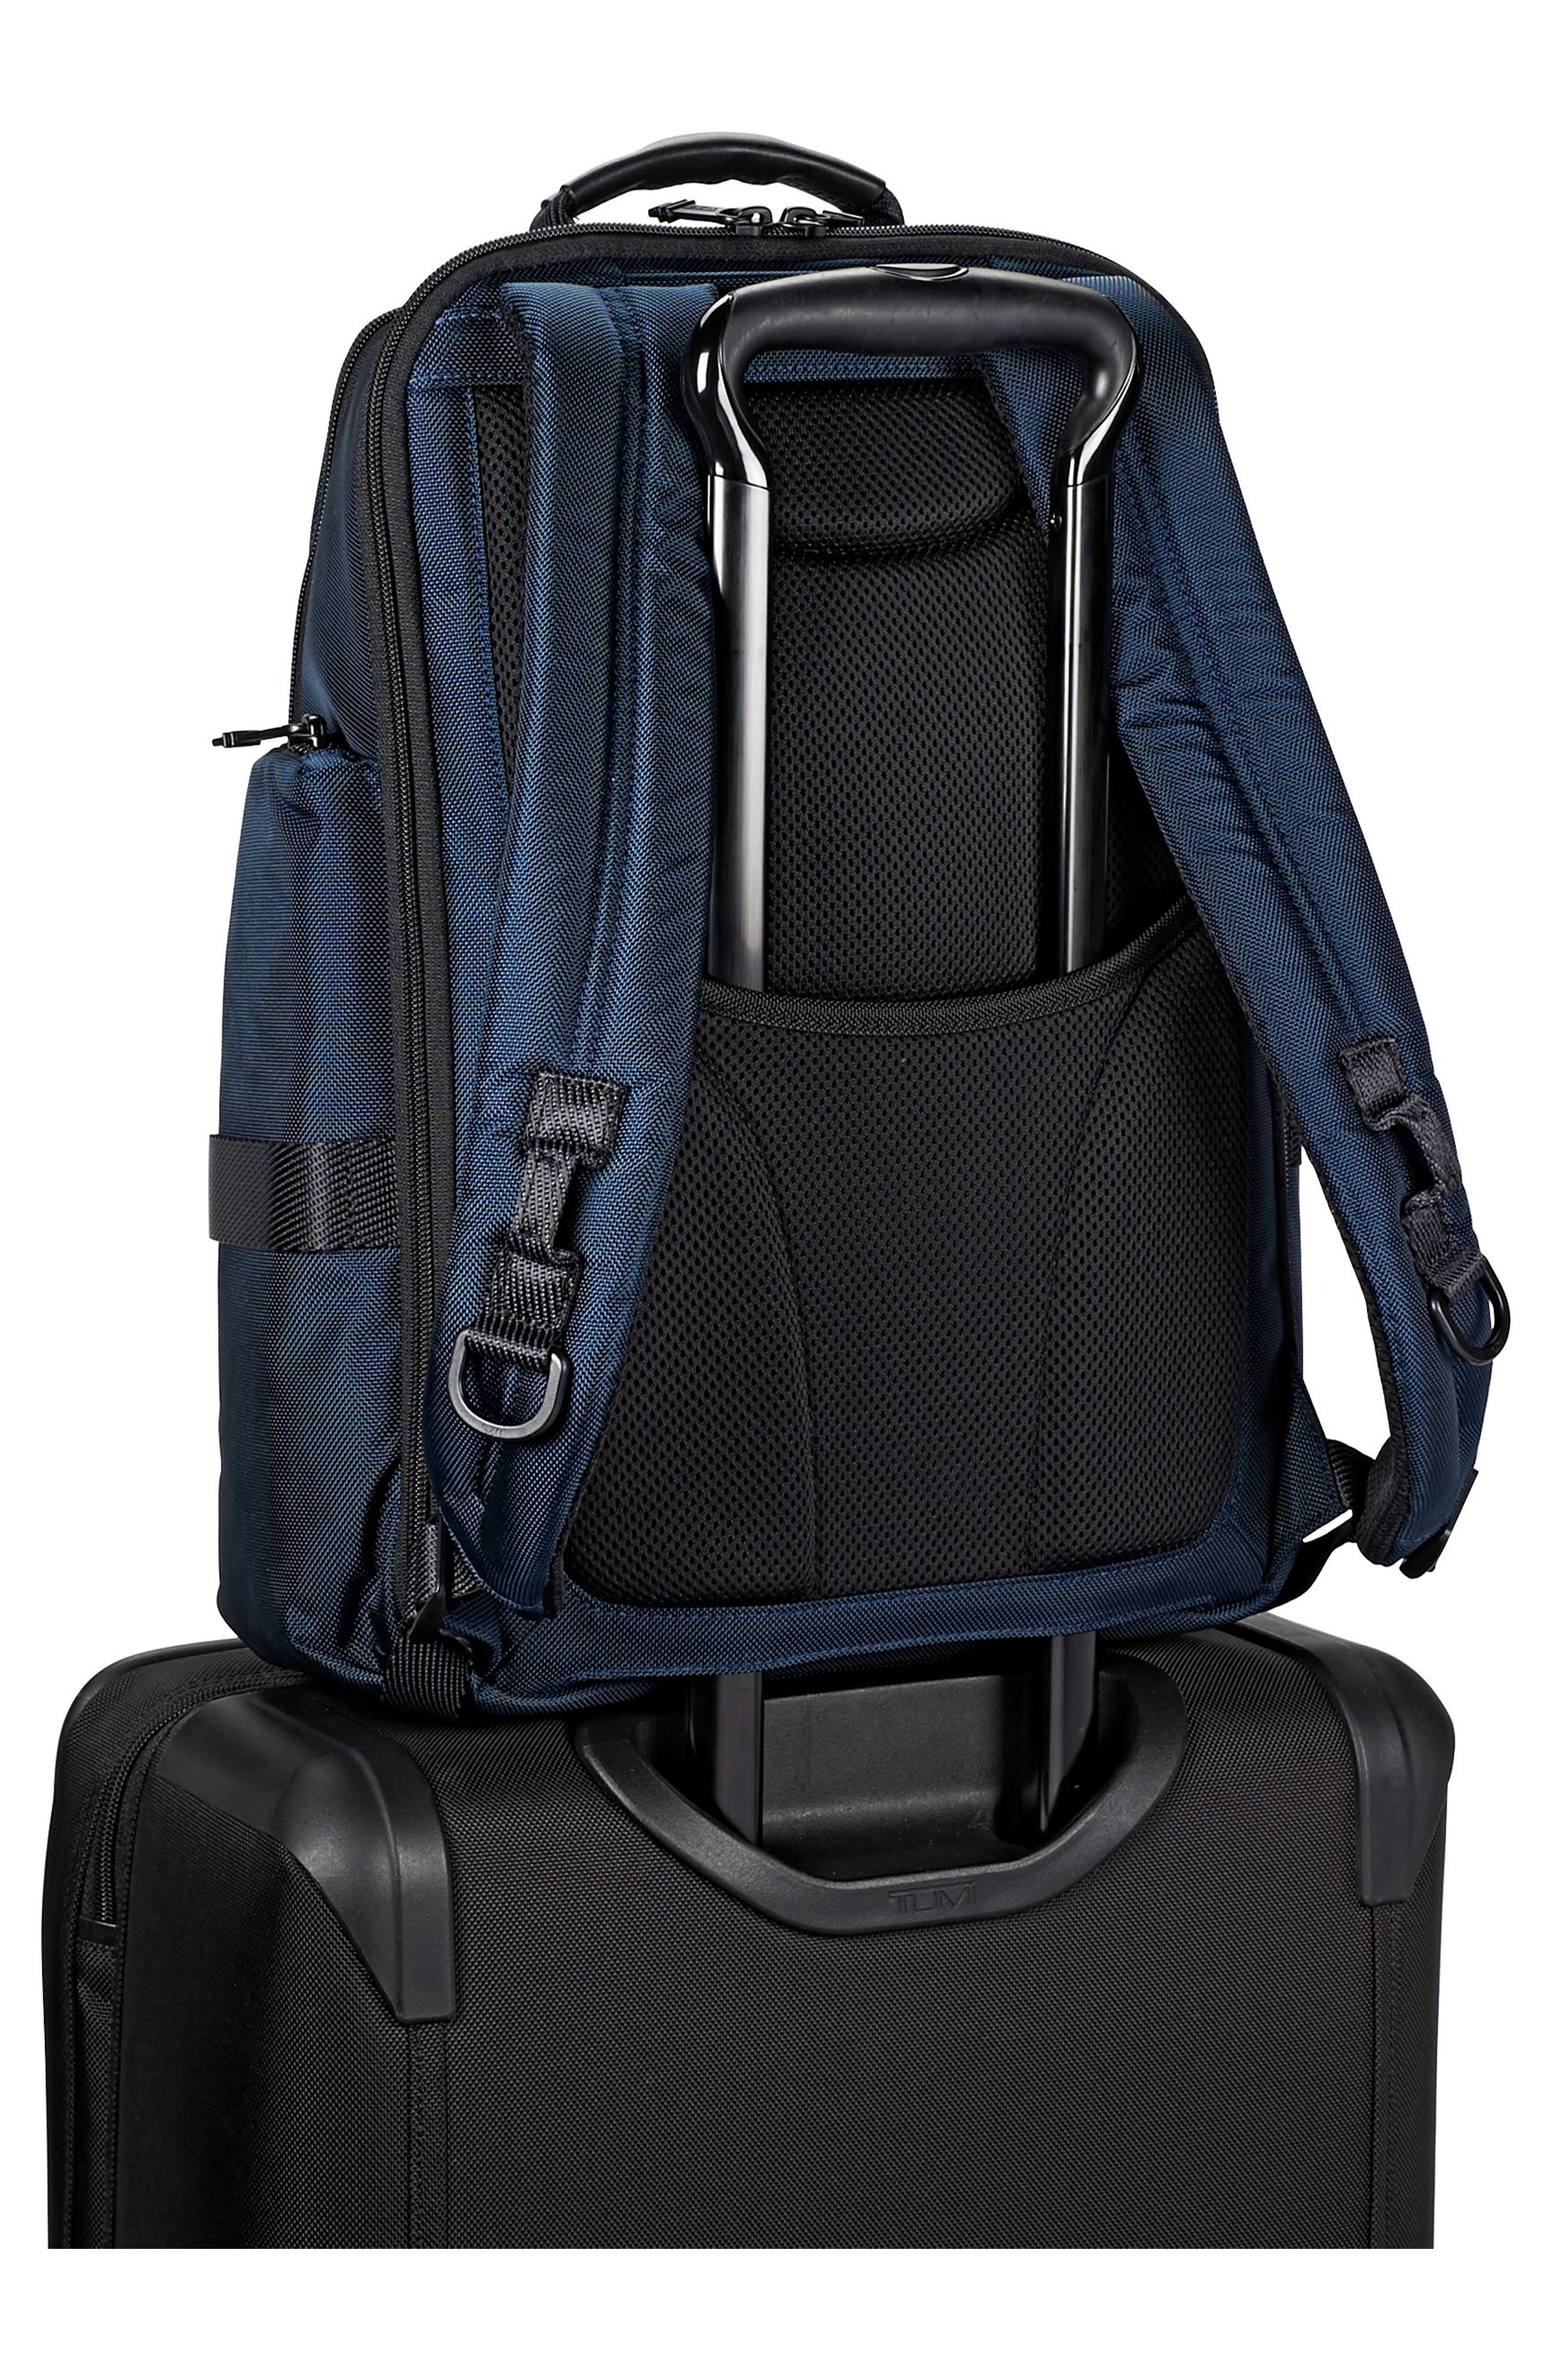 Alpha Bravo - Sheppard Deluxe Backpack,                             Alternate thumbnail 4, color,                             415